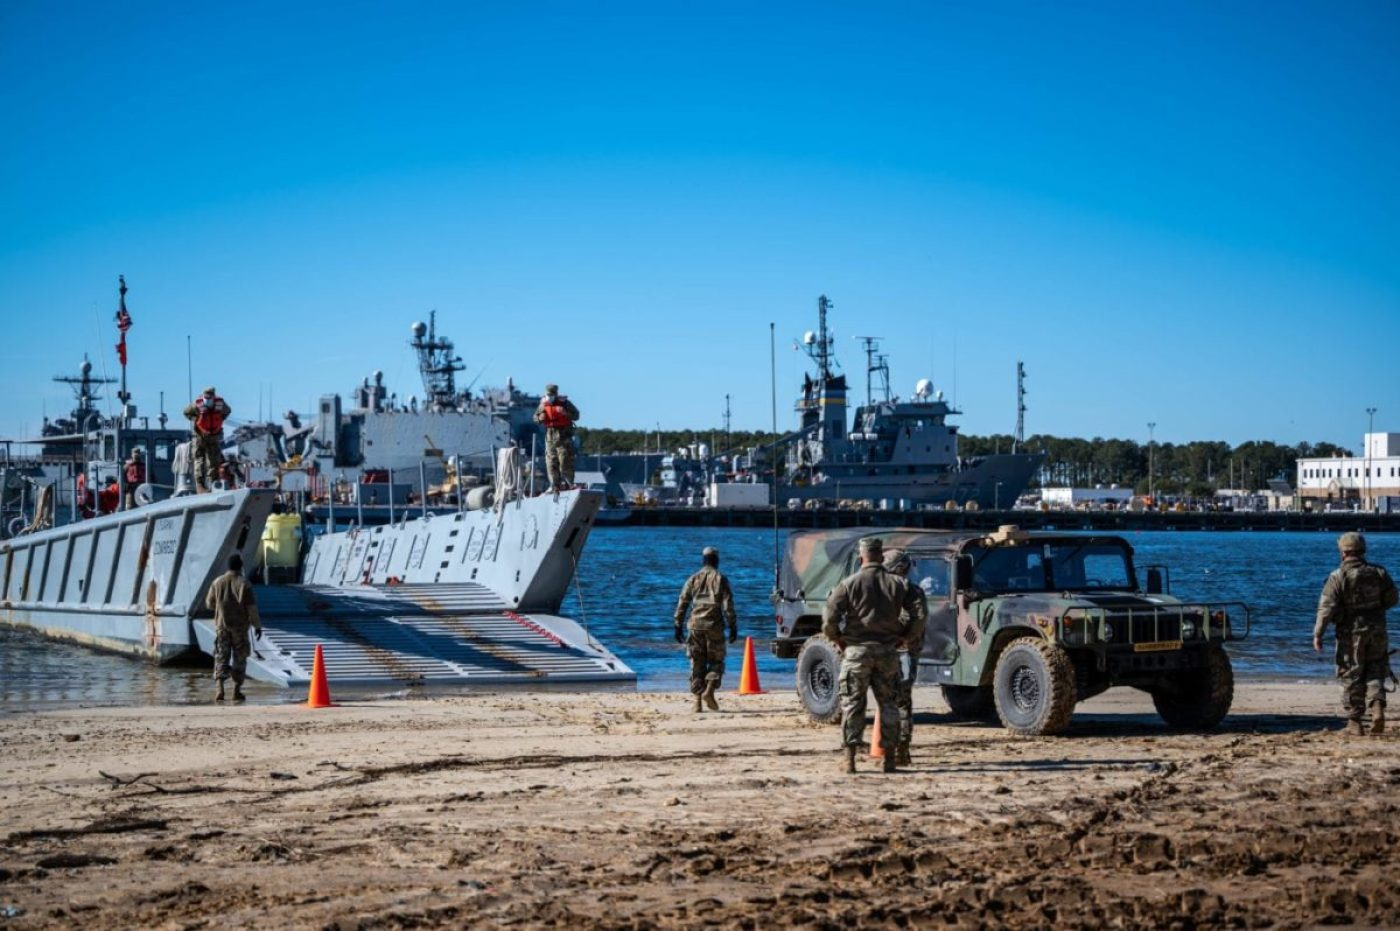 U.S. Army Soldiers from the 10th Transportation Battalion (Terminal) assigned to Joint Base Langley-Eustis prepare to load a Humvee onto a landing craft mechanized (LCM) during a Logistics Over-the-Shore (LOTS) training at Joint Expeditionary Base-Little Creek, Virginia, Feb. 4, 2021. The battalion deploys worldwide to provide watercraft and maintenance assets to conduct Combined, Joint and or Service LOTS, Intra-theater lift and riverine operations in support of the operational commander. (U.S. Air Force photo by Senior Airman Anthony Nin Leclerec)